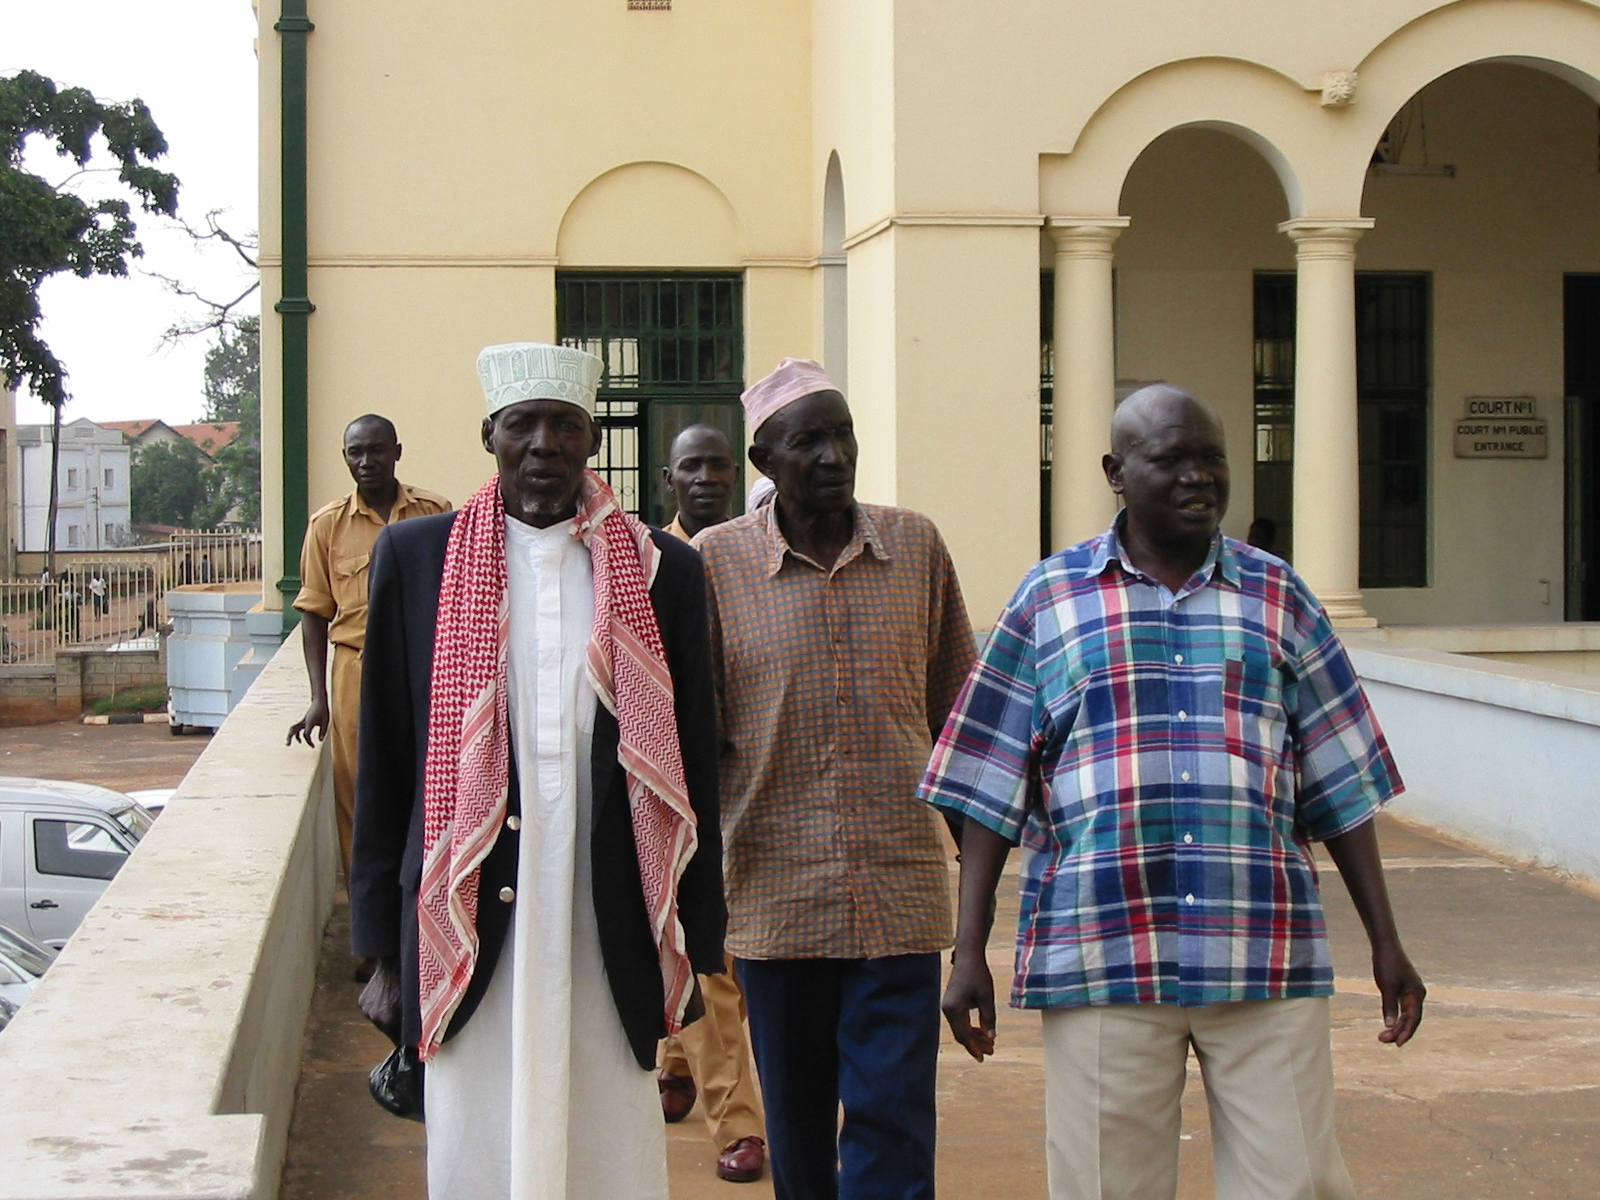 The accused (from left): Mohammed Anyule, Nasur Gille, Yusuf Gowon (Andrew Rice)